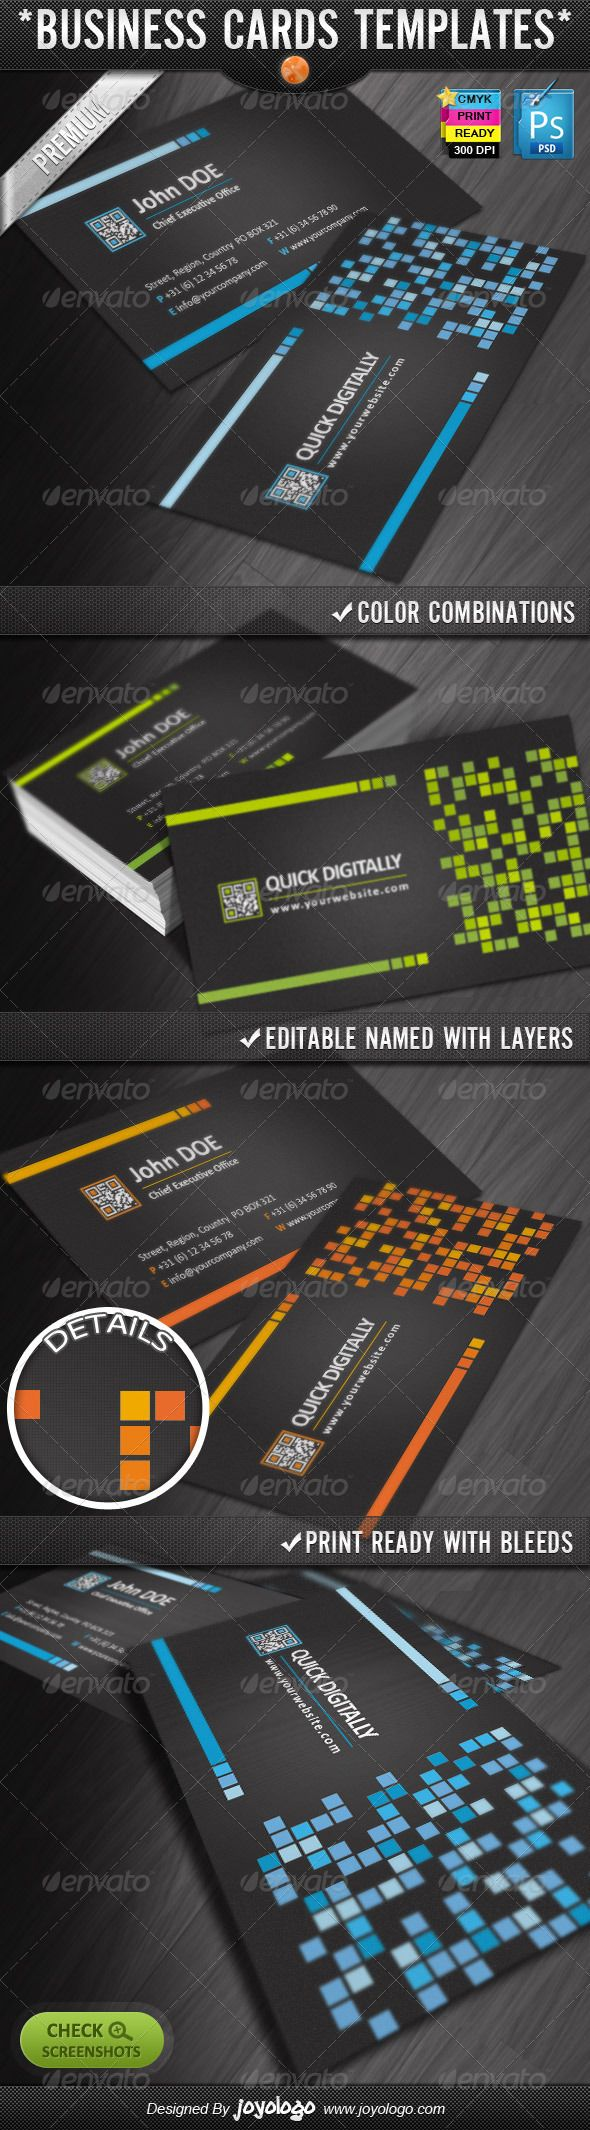 Digitally Quick Response Business Cards Designs - #Creative #Business #Cards Download here: https://graphicriver.net/item/digitally-quick-response-business-cards-designs/2301371?ref=alena994